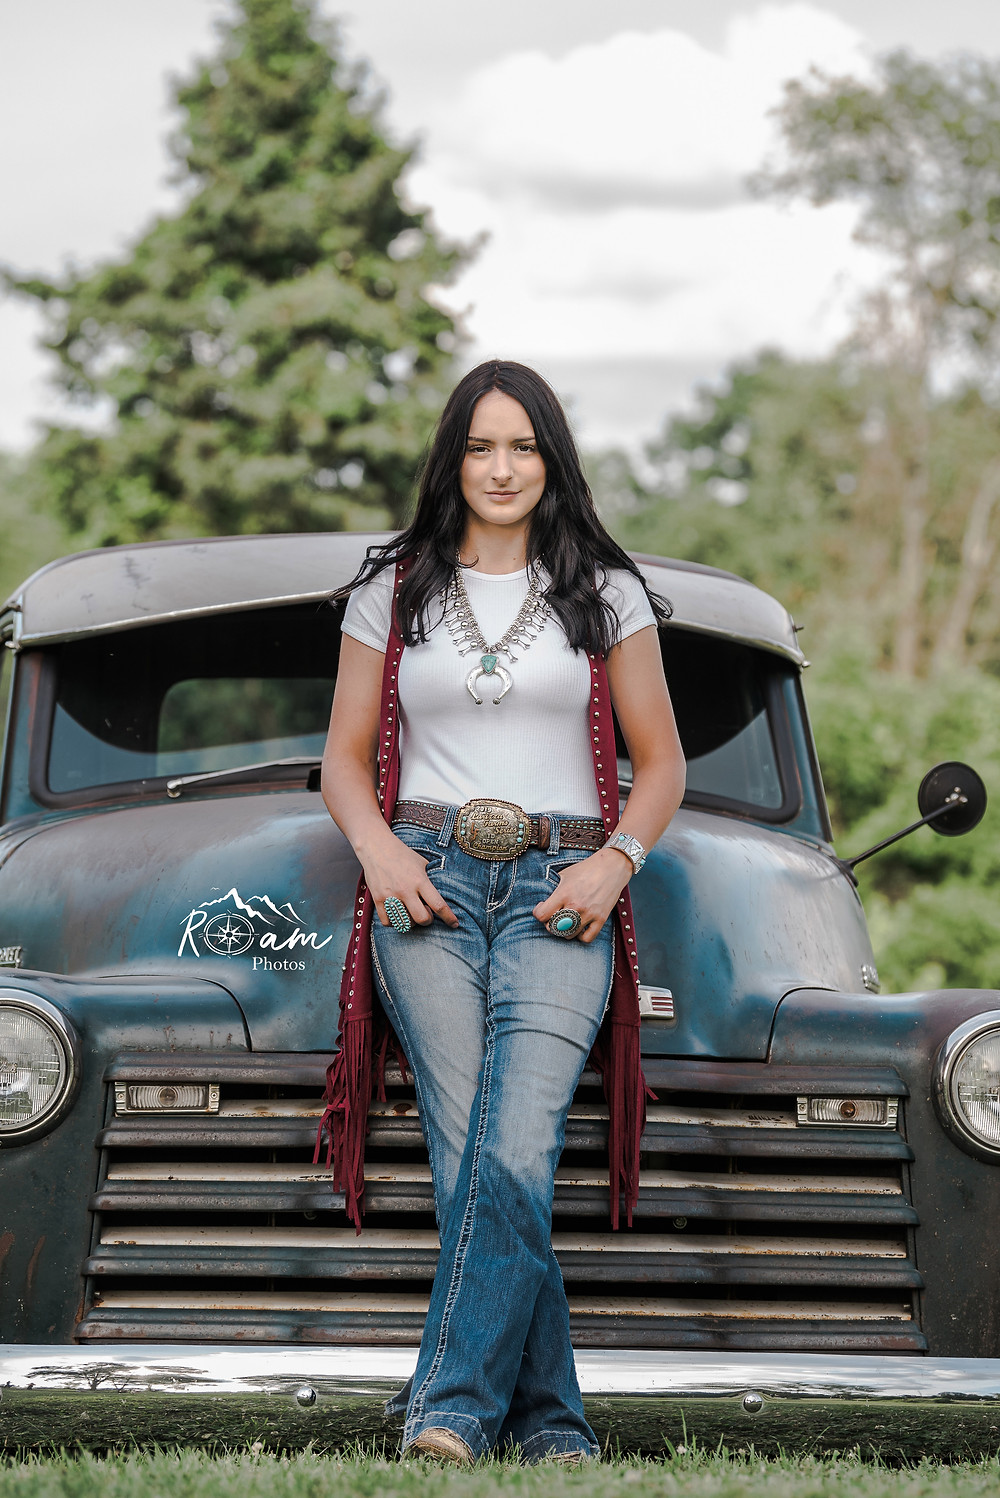 Cowgirl leaning against an old truck.